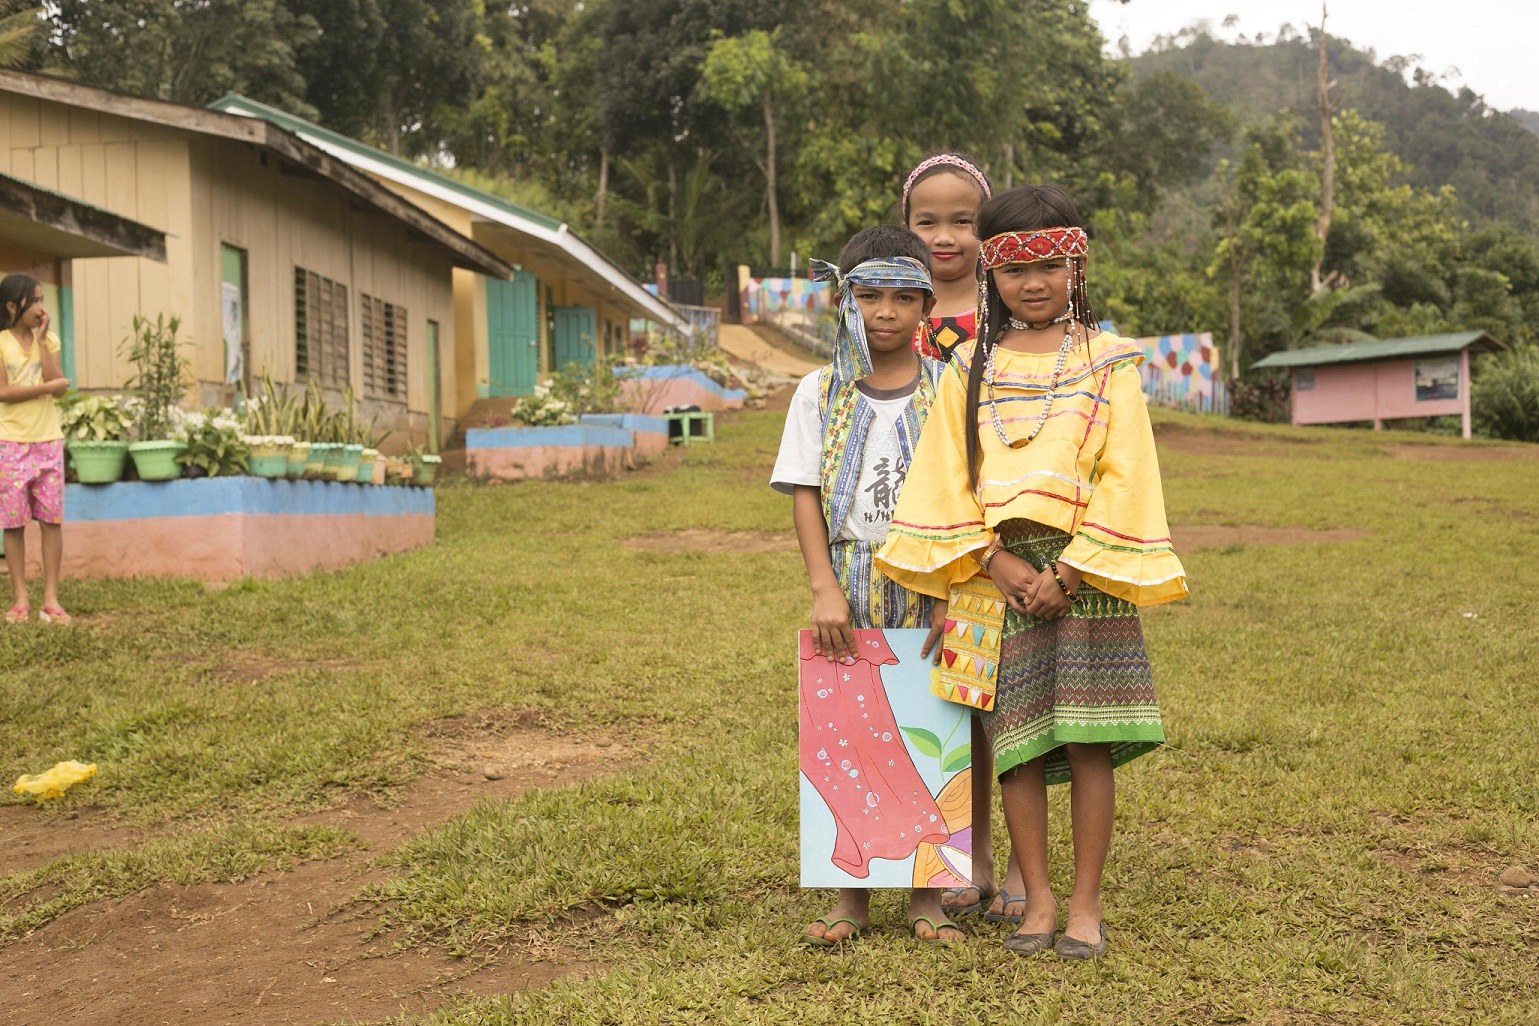 'Language is our only difference' – Manobo girl to other kids